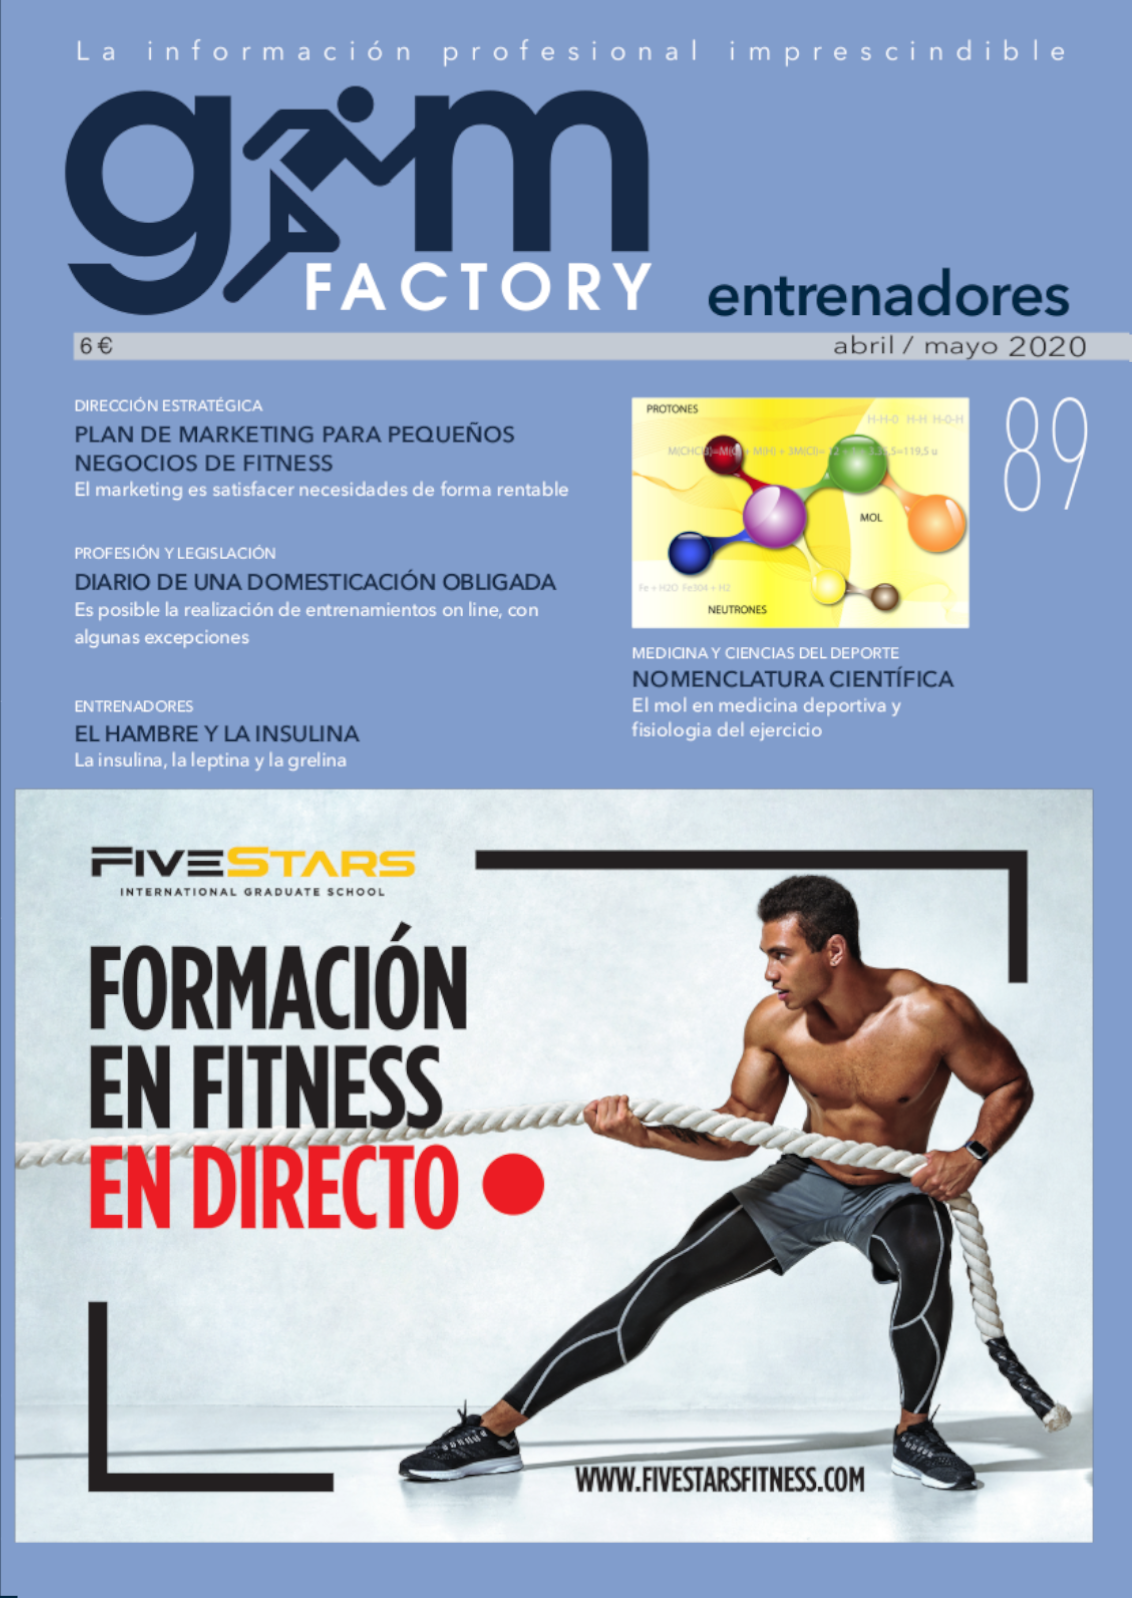 //www.gymfactory.net/wp-content/uploads/2020/05/gymfactory-89-entrenadores.png